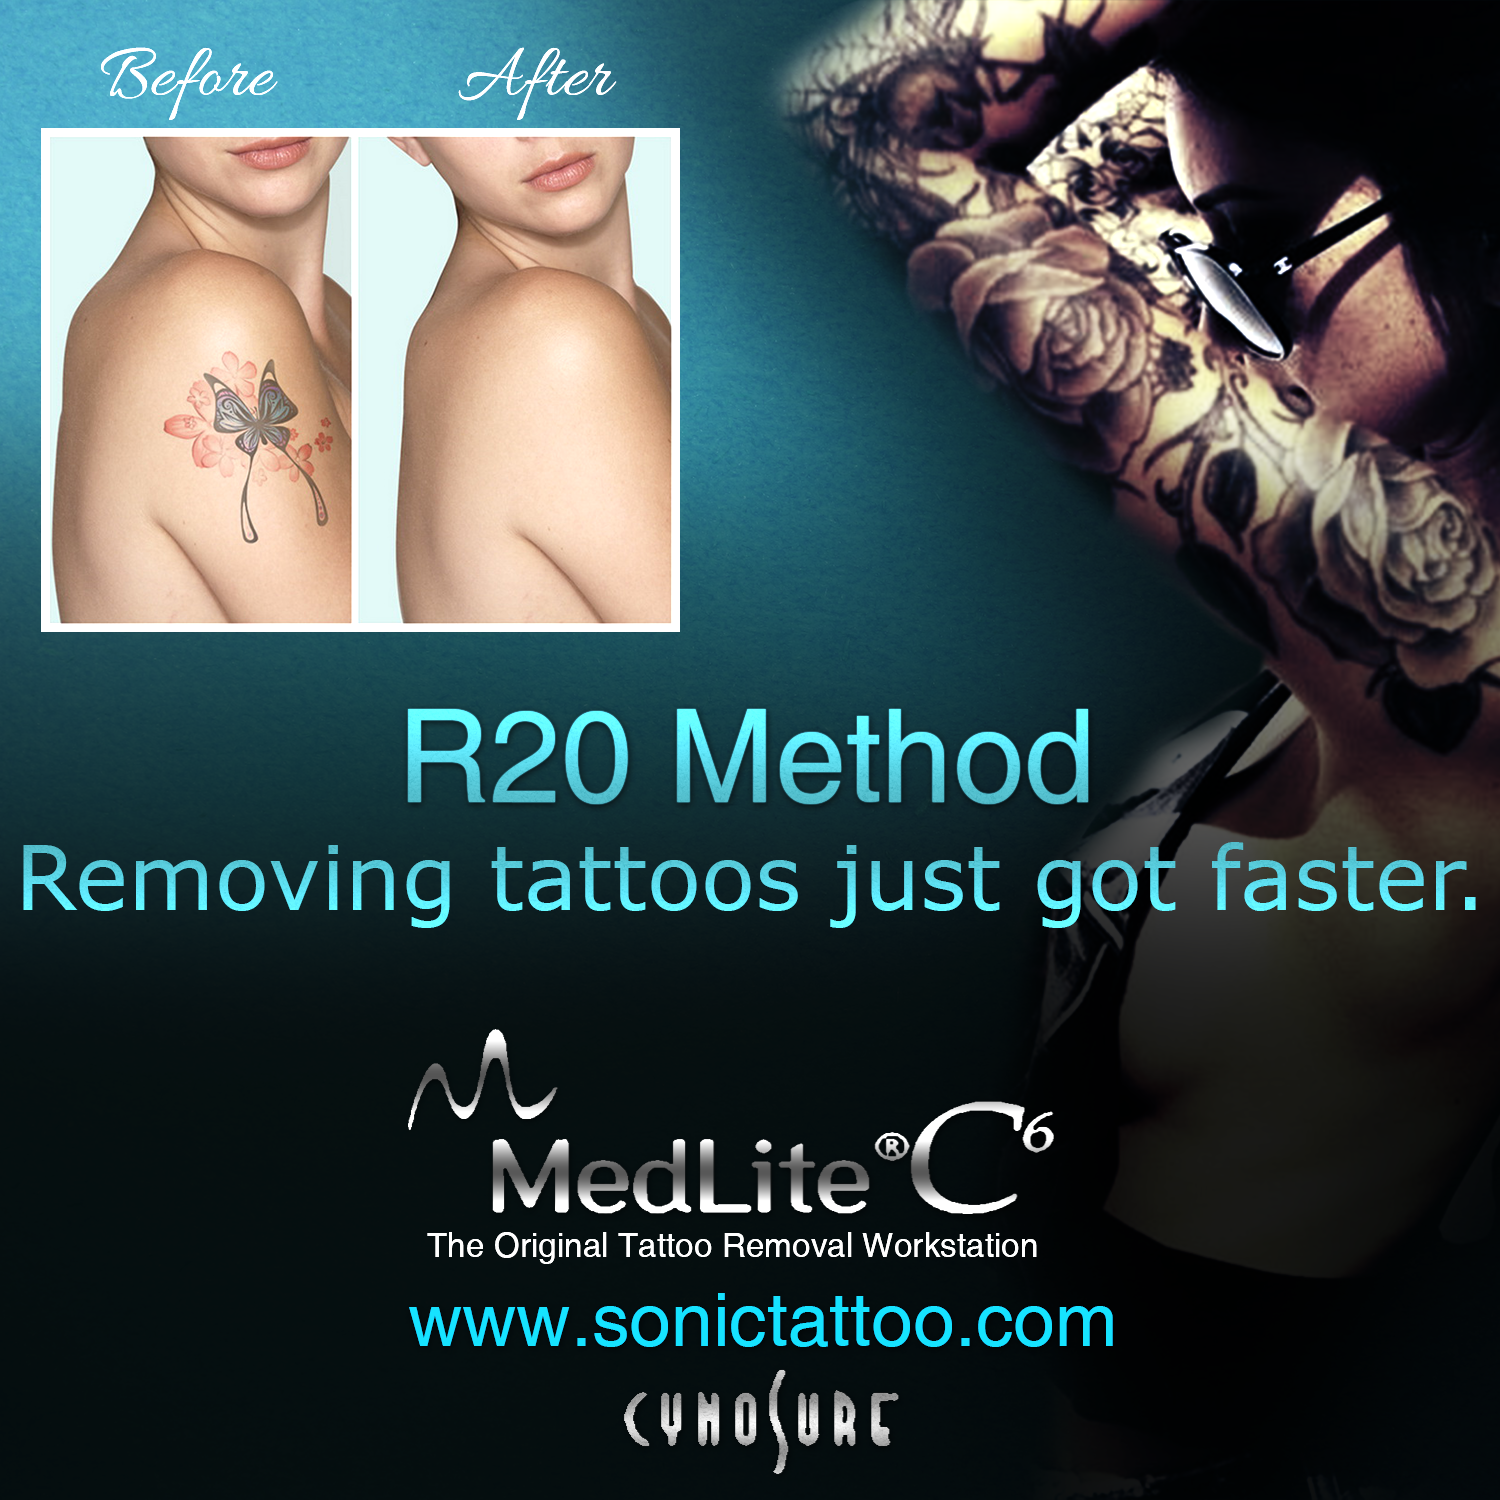 The R20 Method! Removing Tattoos 4x Faster!